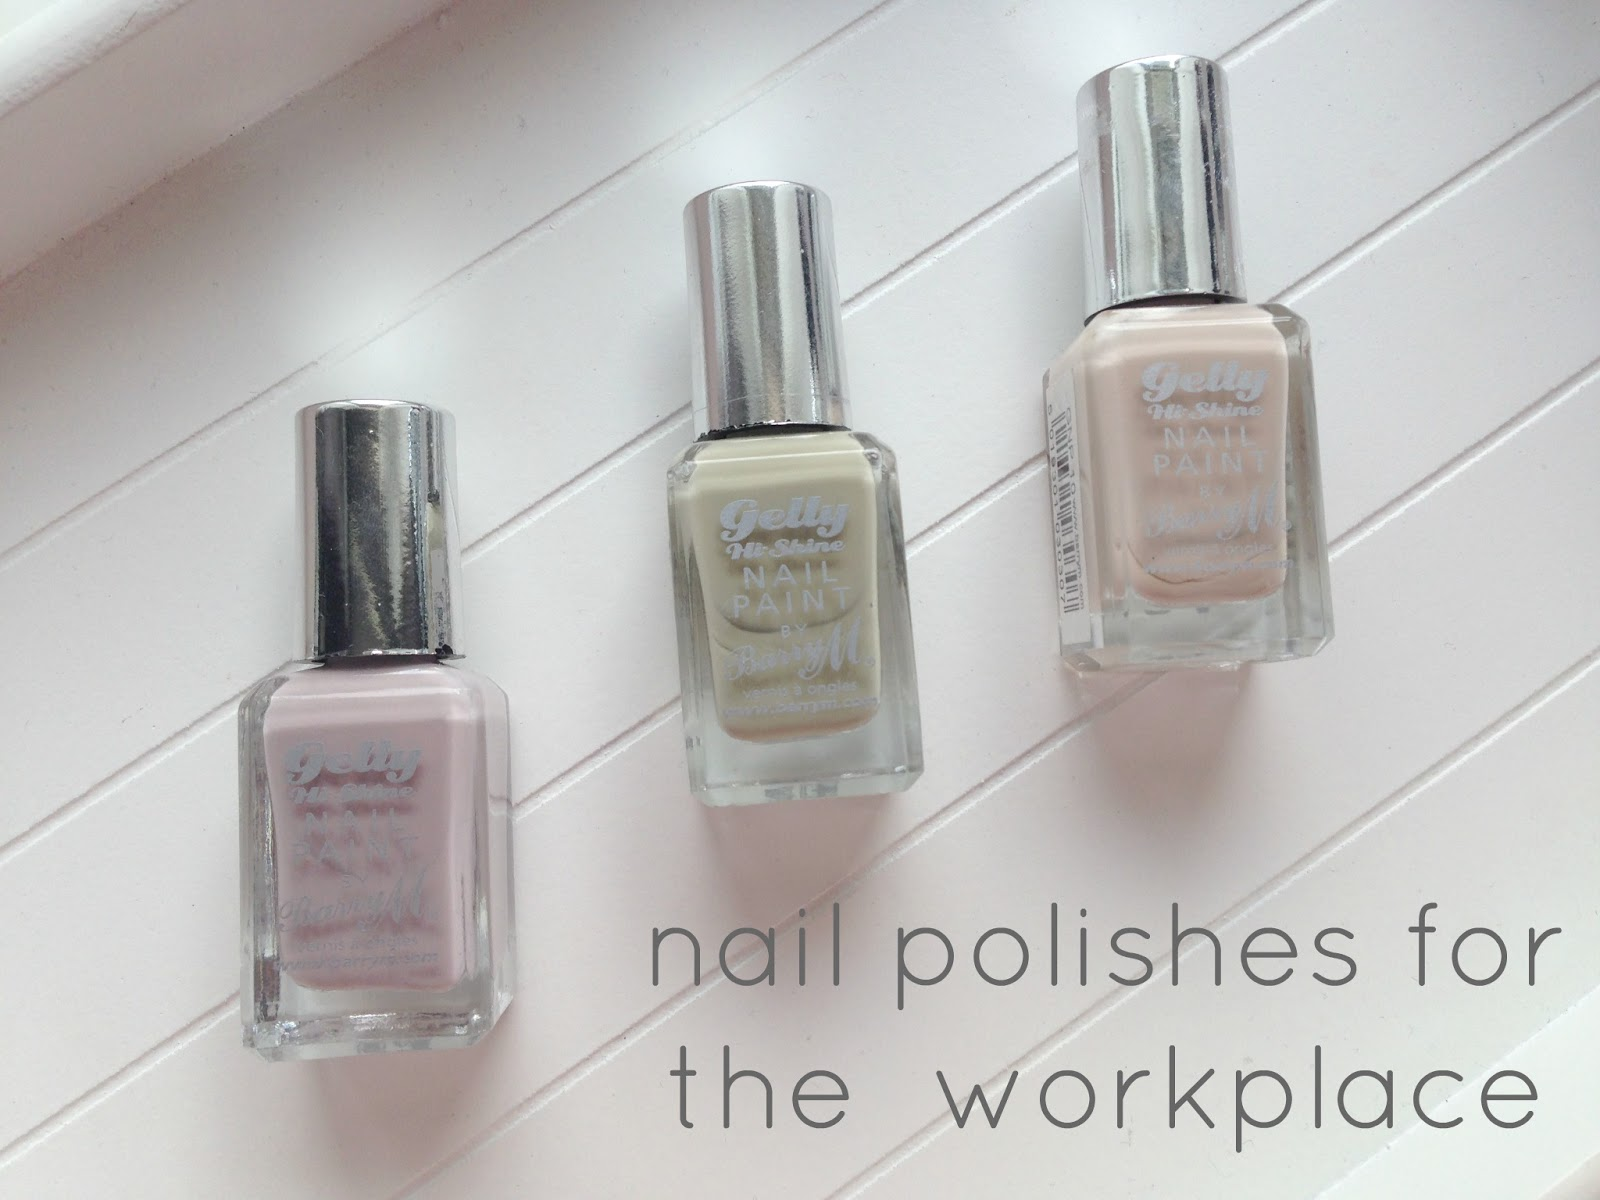 nail polishes for the workplace barry m gelly polishes nude olive lychee almond nails inc porchester swuare dupe